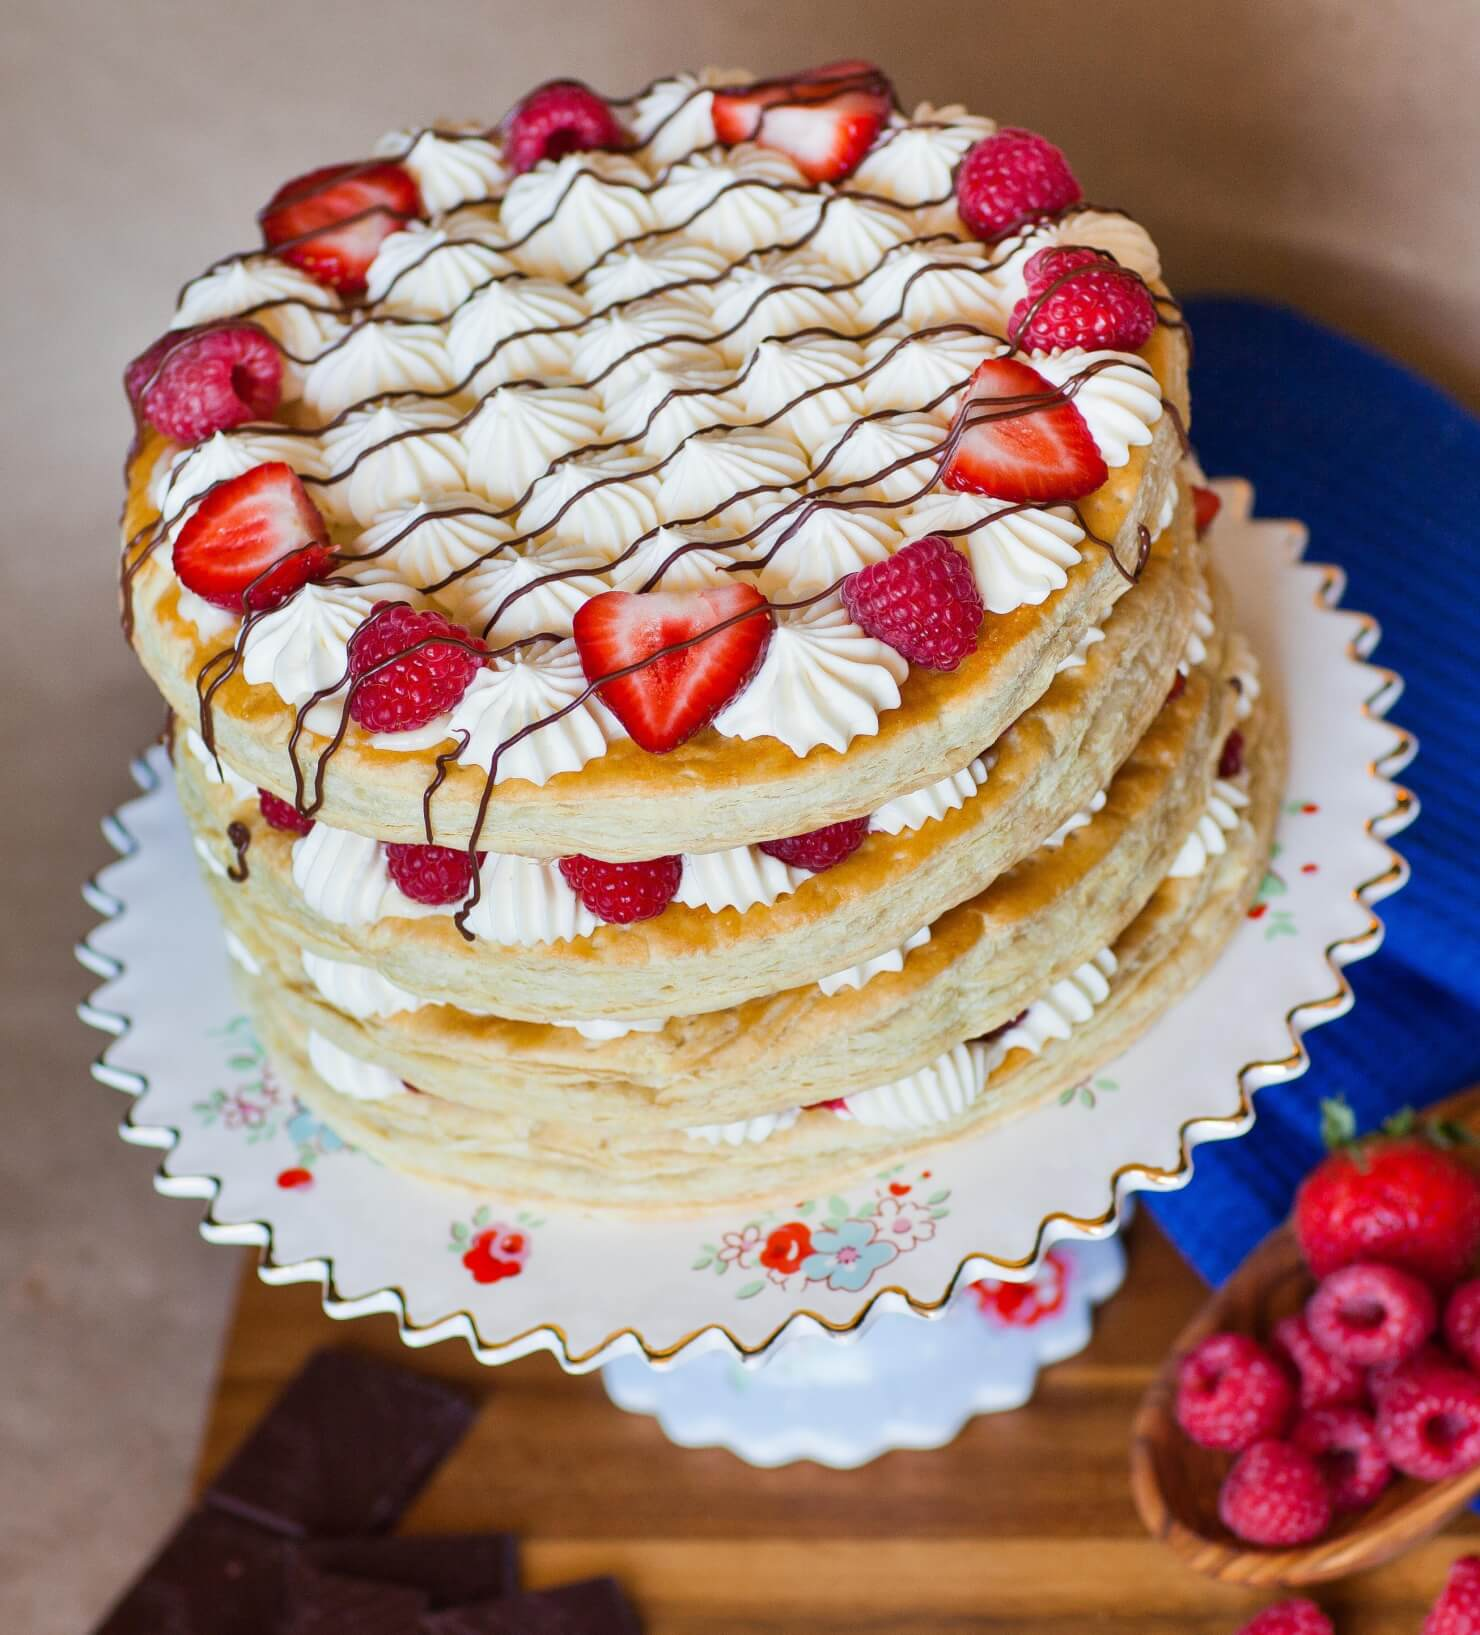 mille feuille cake wth custard filling and berries